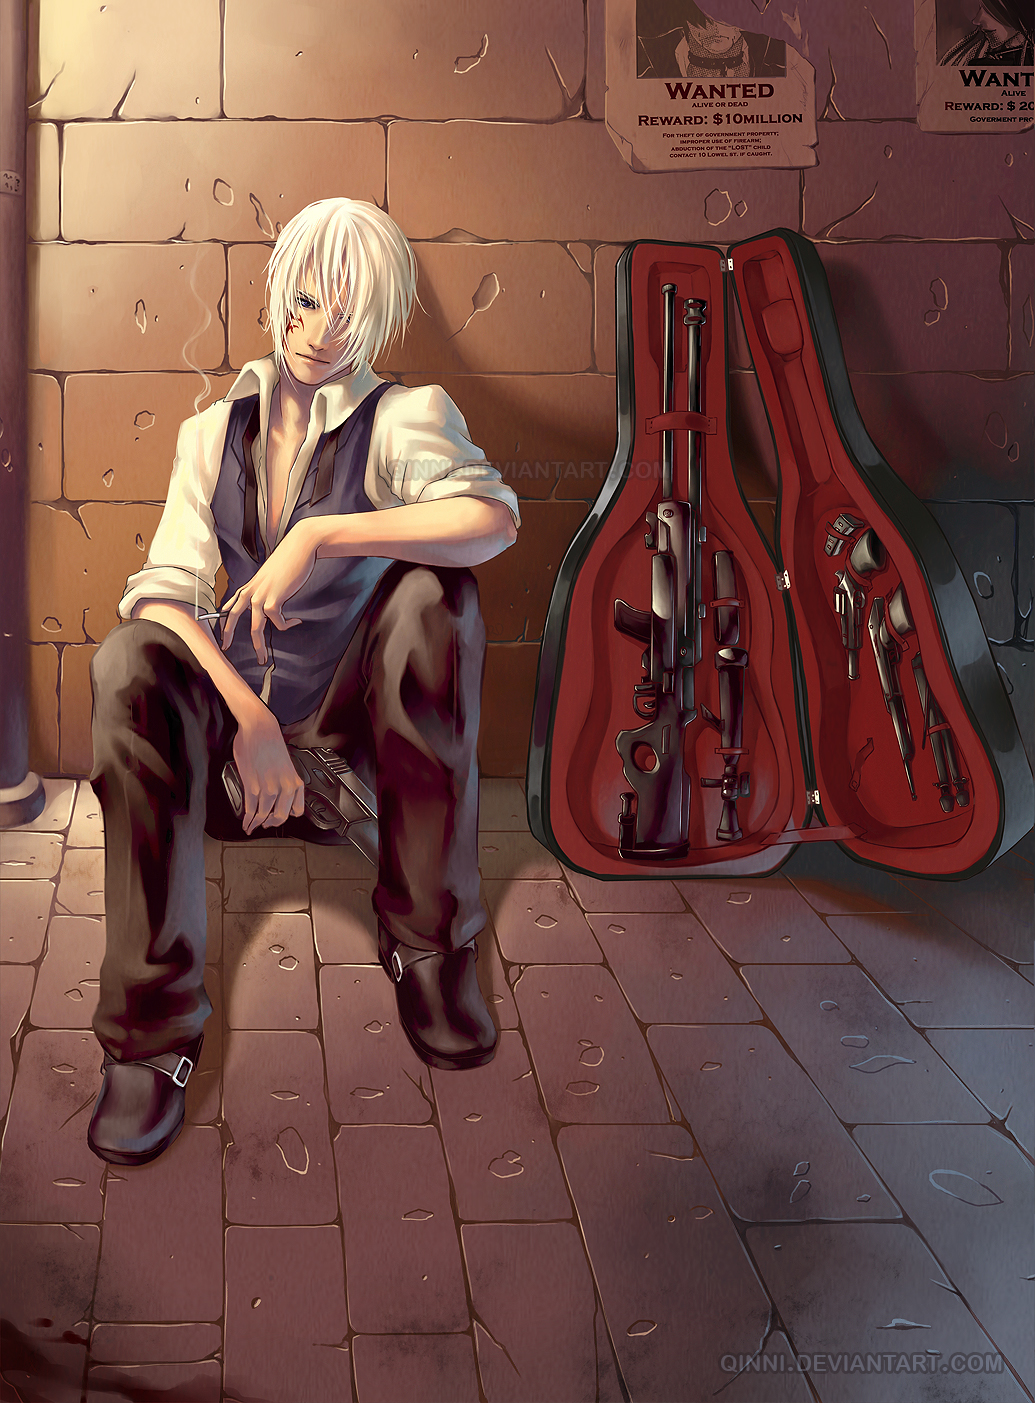 The Assassin by Qinni